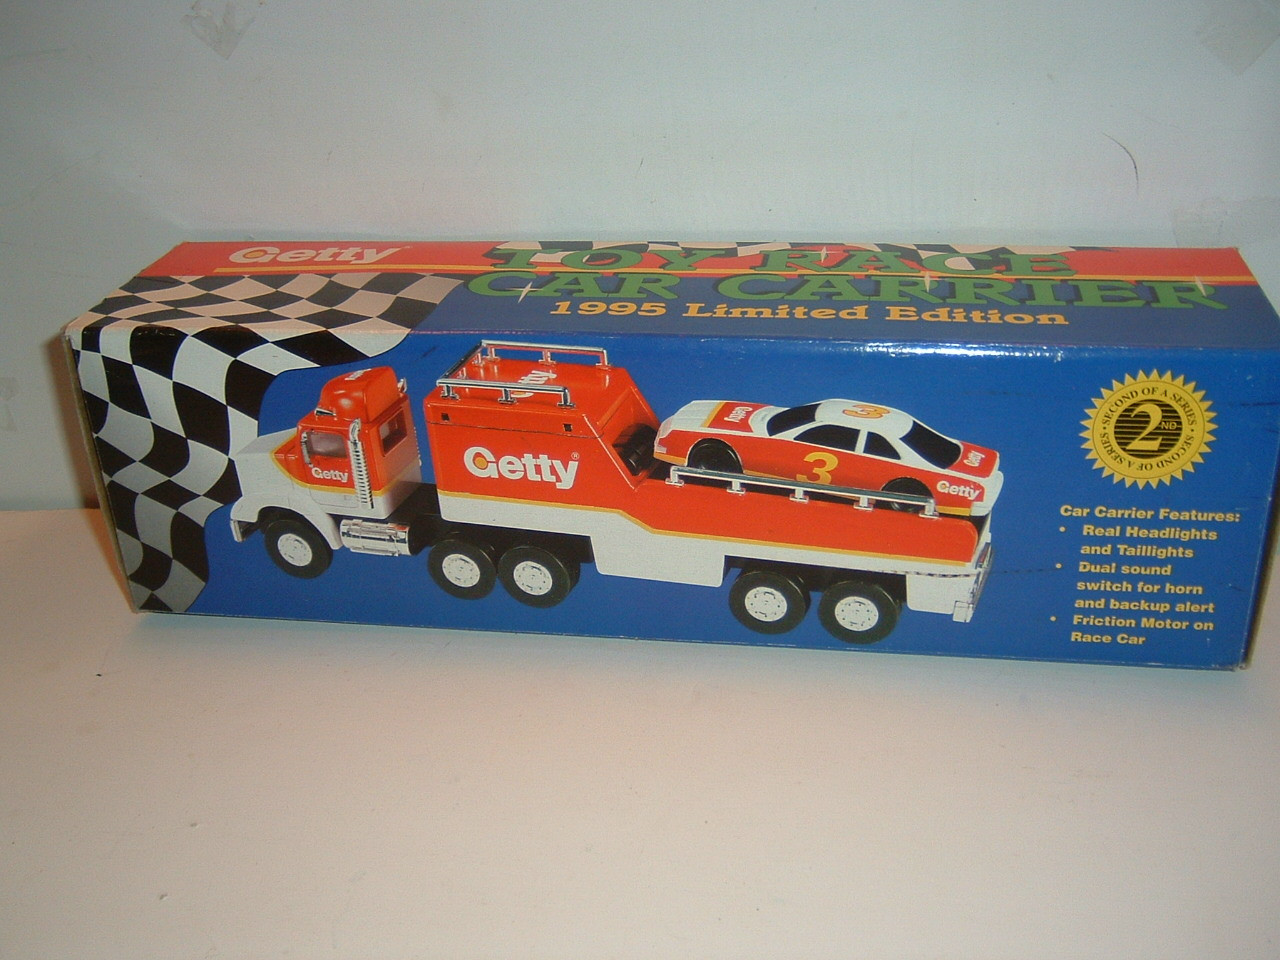 Toy Race Trucks : Getty toy truck race car carrier le new